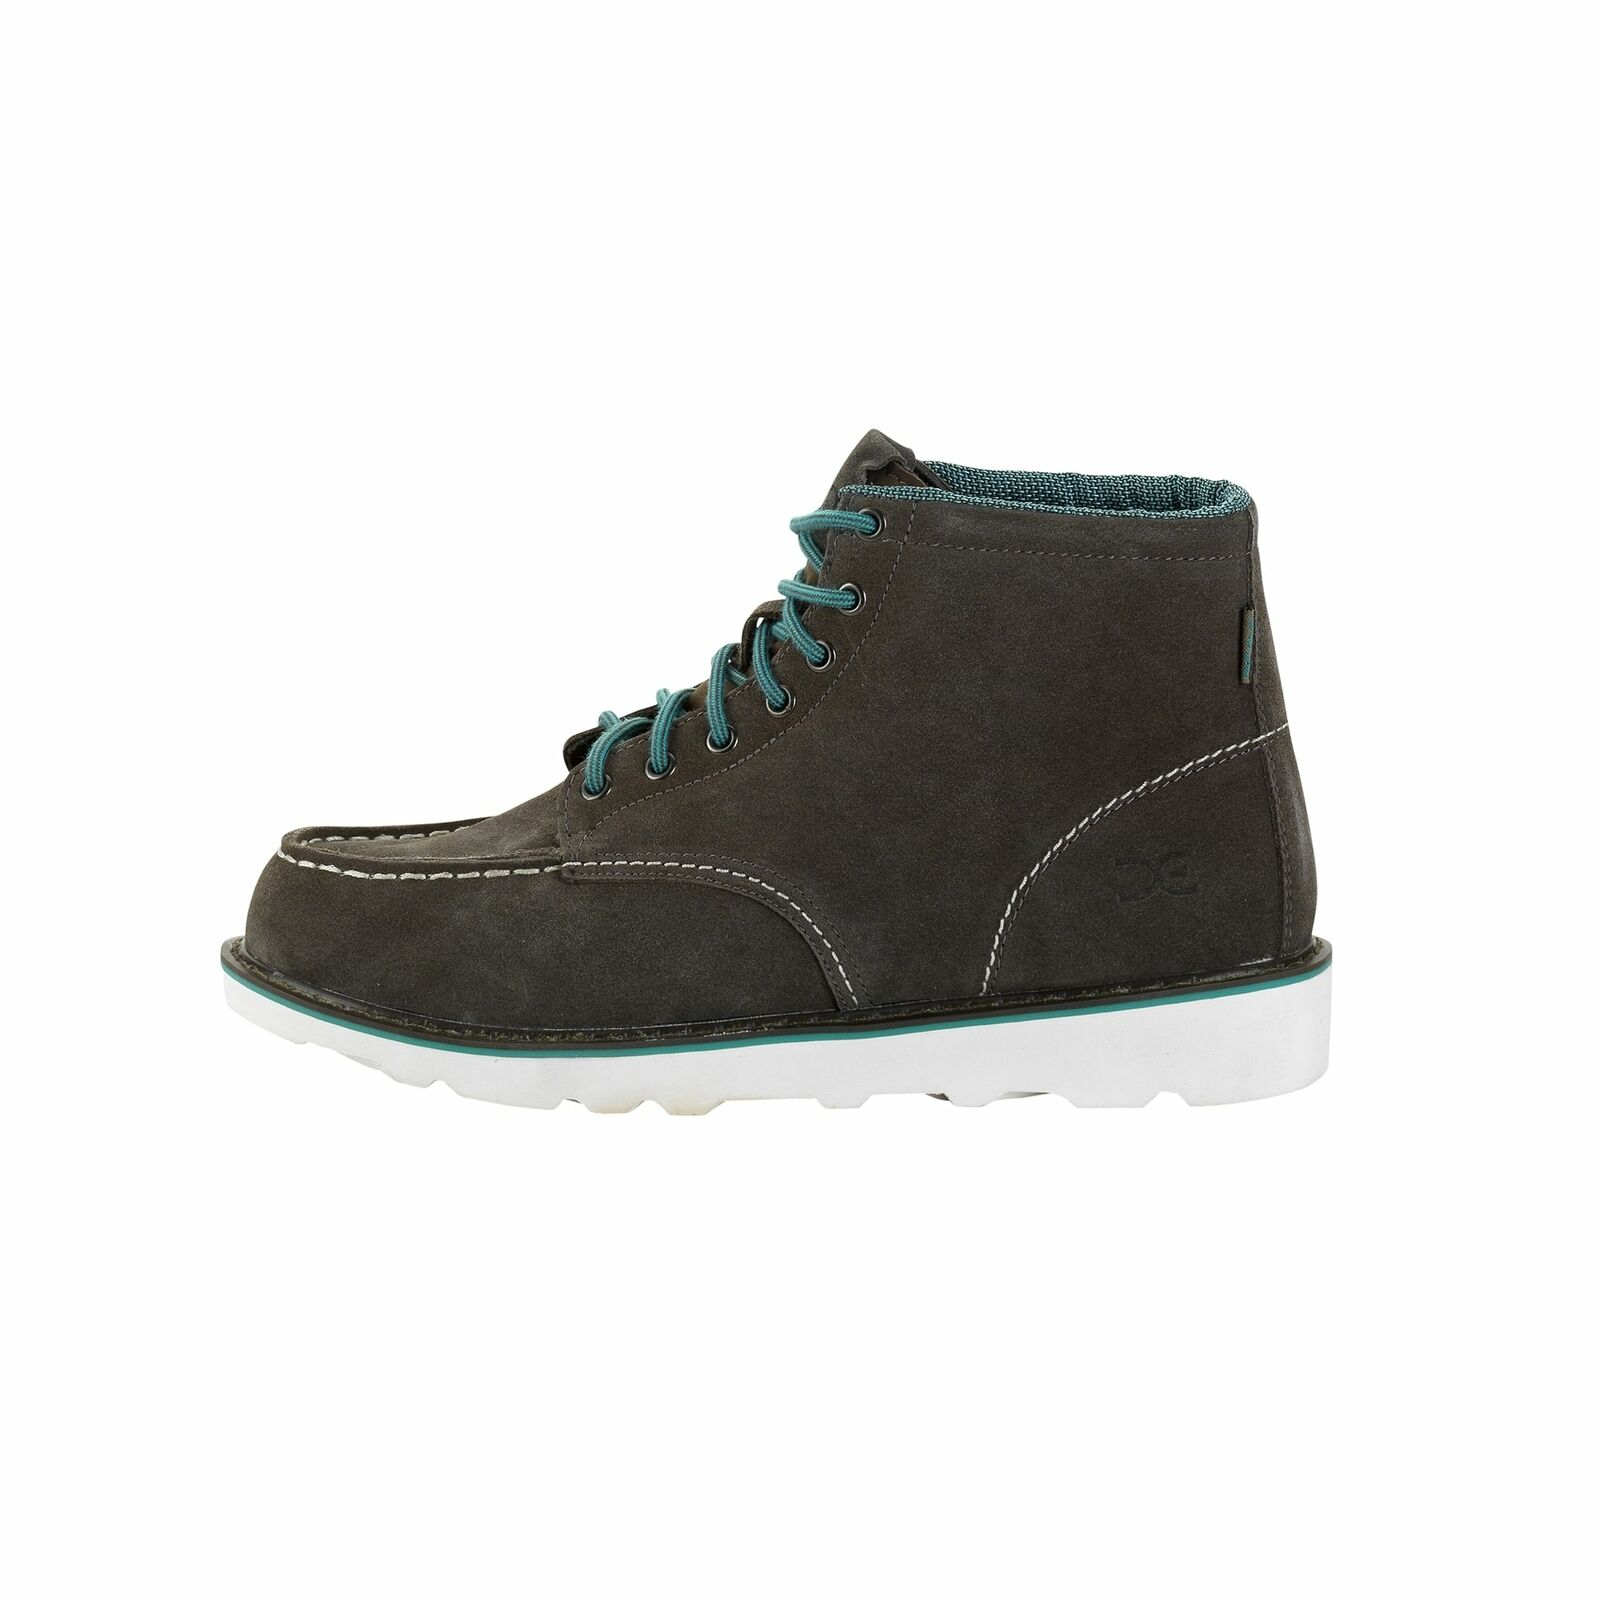 Hey Dude shoes Mens Rocca Bruno Suede Moc Toe Boots